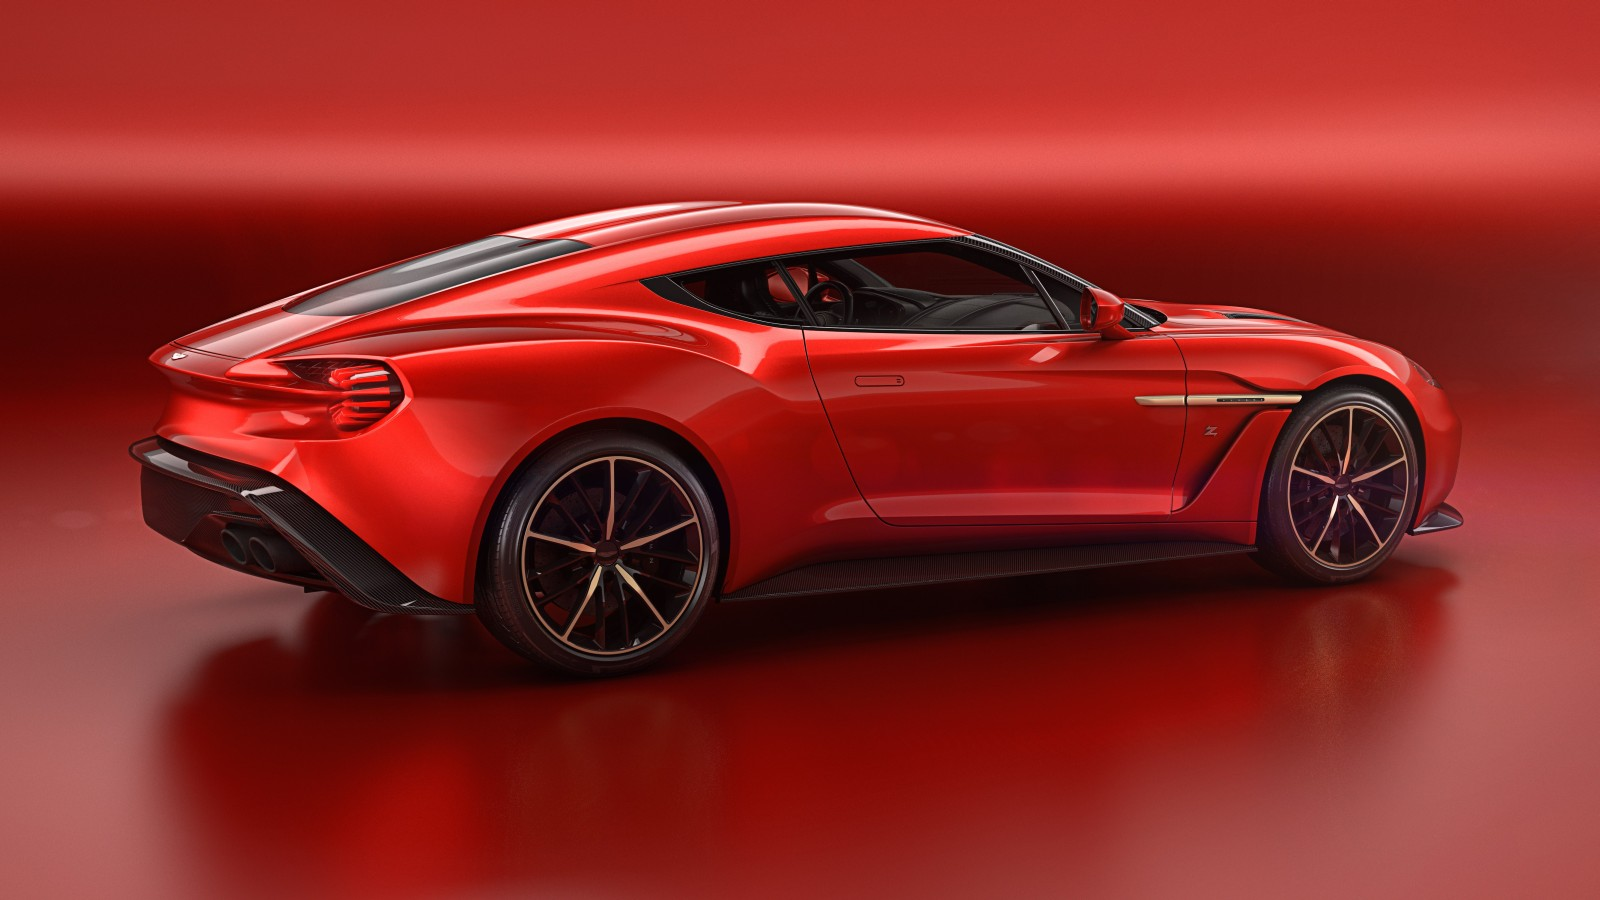 2018 Aston Martin V12 Zagato Concept photo - 5